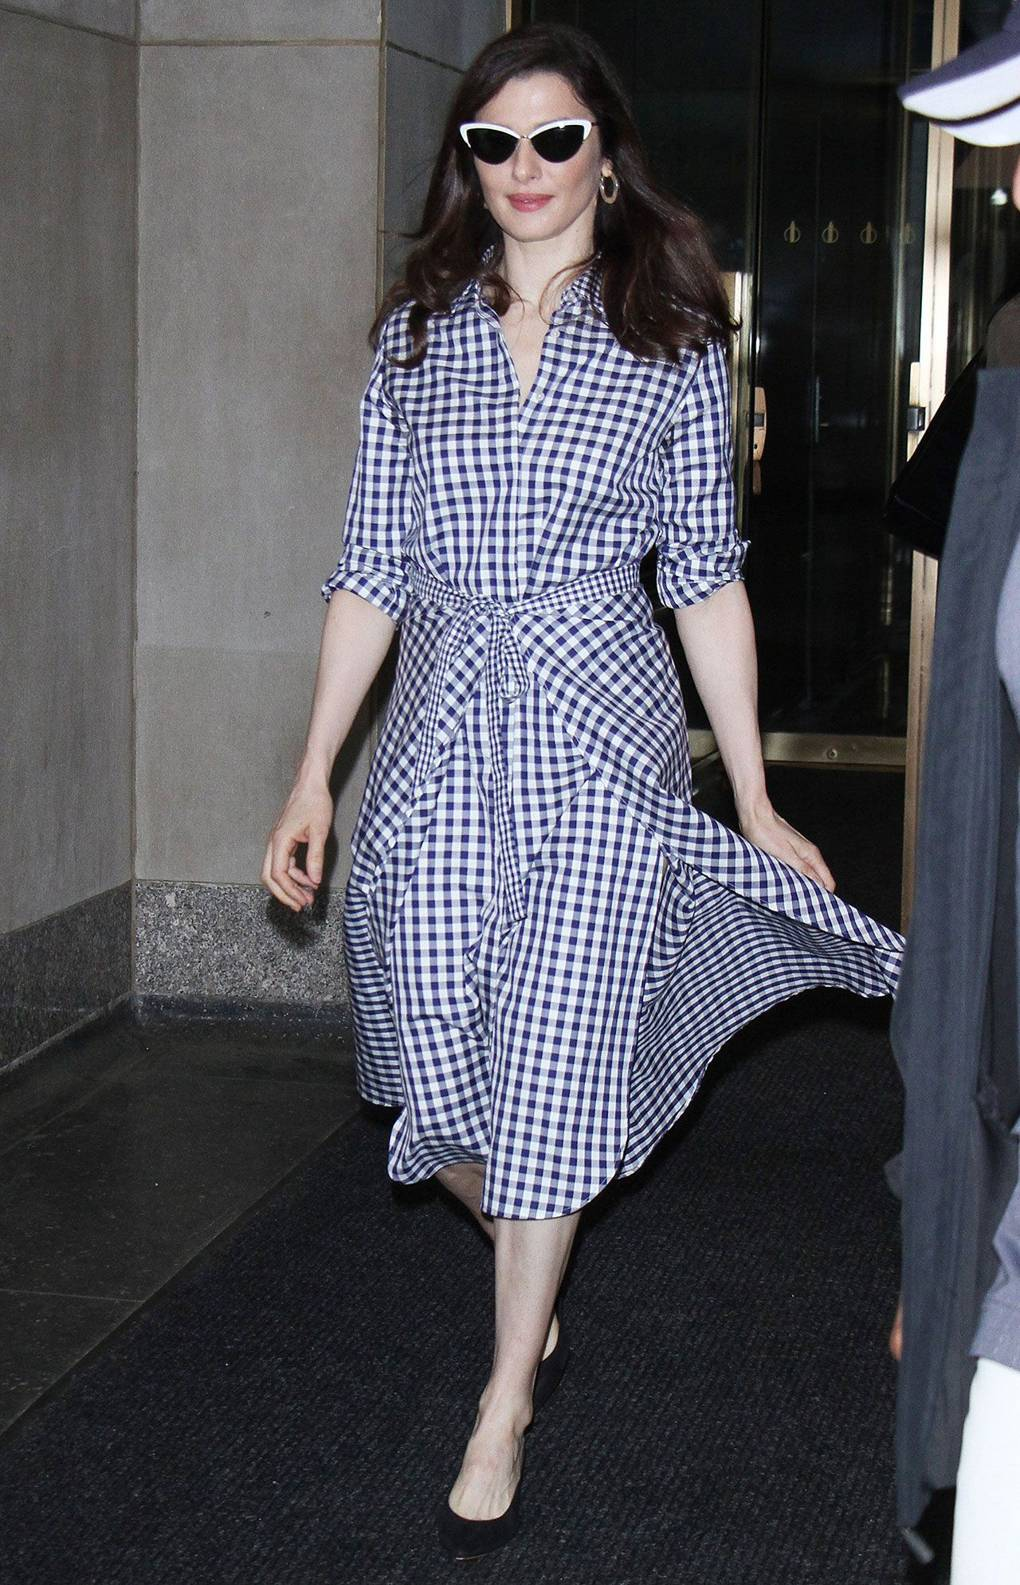 ead4f9c0c4d150 Celebrities Wearing Gingham